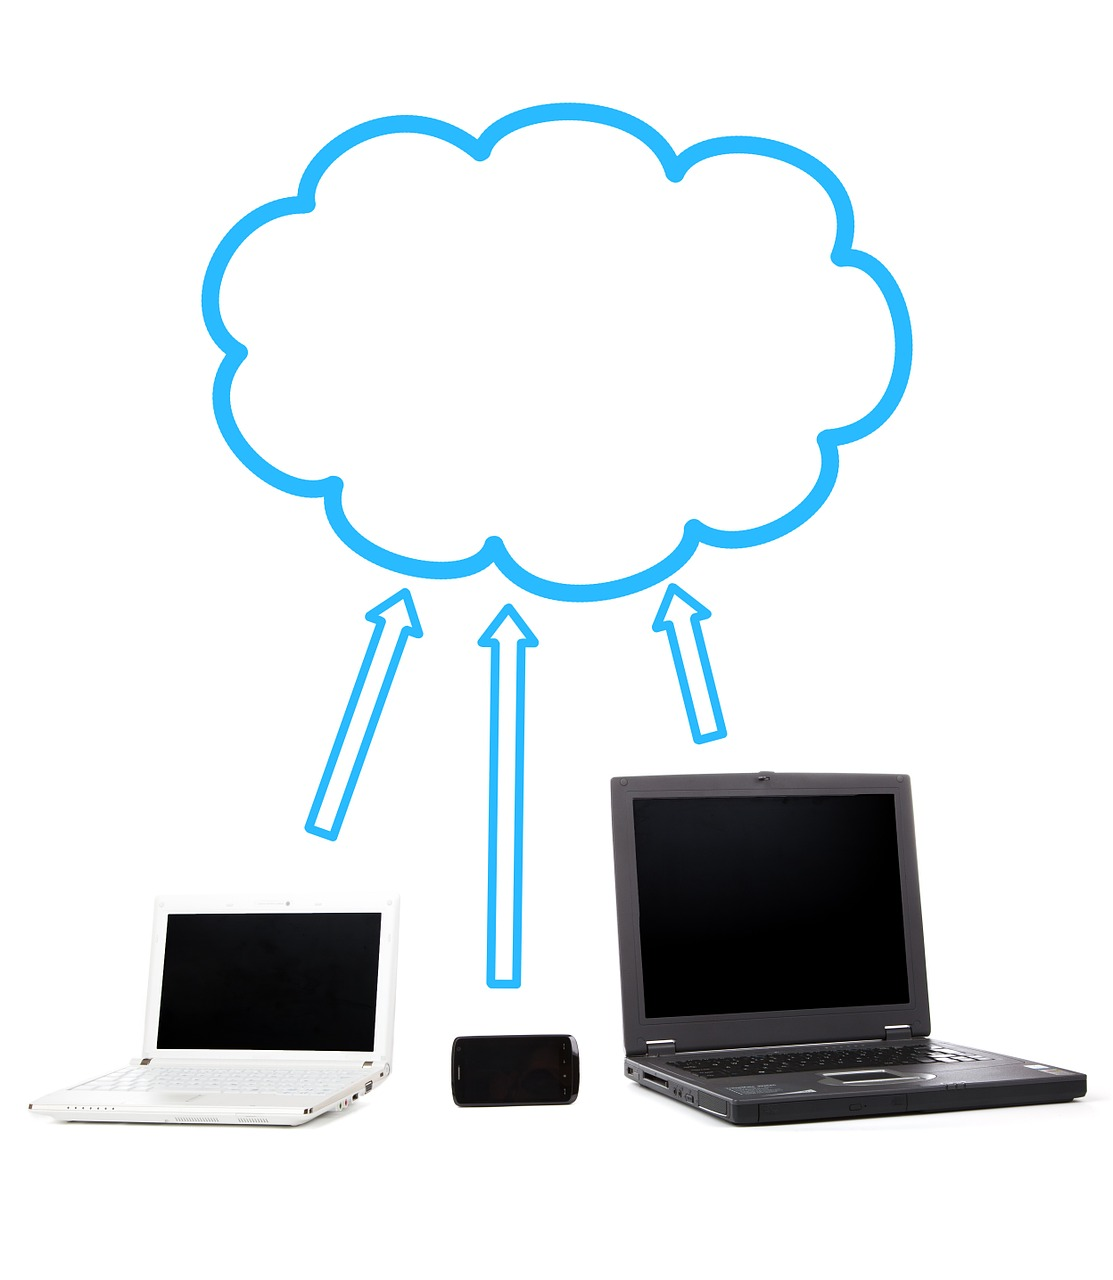 Three mobile computing devices with blue arrows pointing up towards a blue-outlined cloud